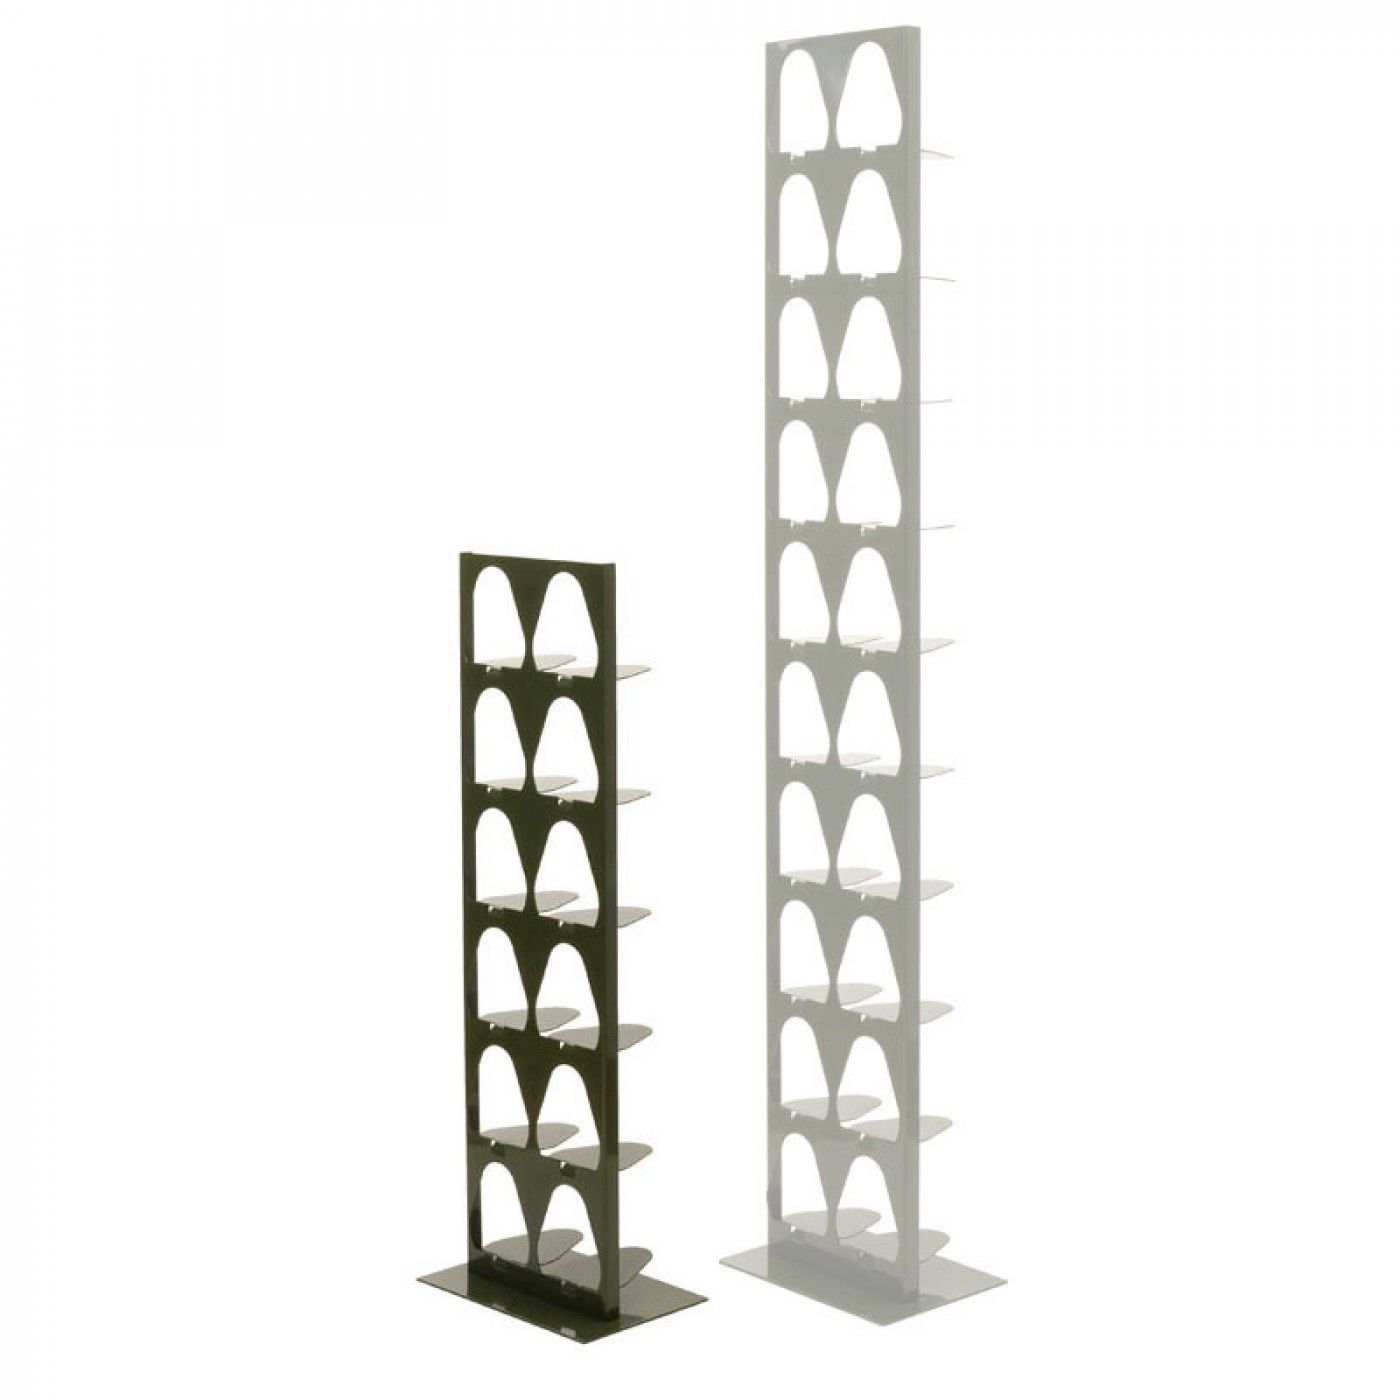 PERIGOT - DESIGN UTILITAIRE - SHOES RACK COLOMBAGE VERTICAL SMALL ...